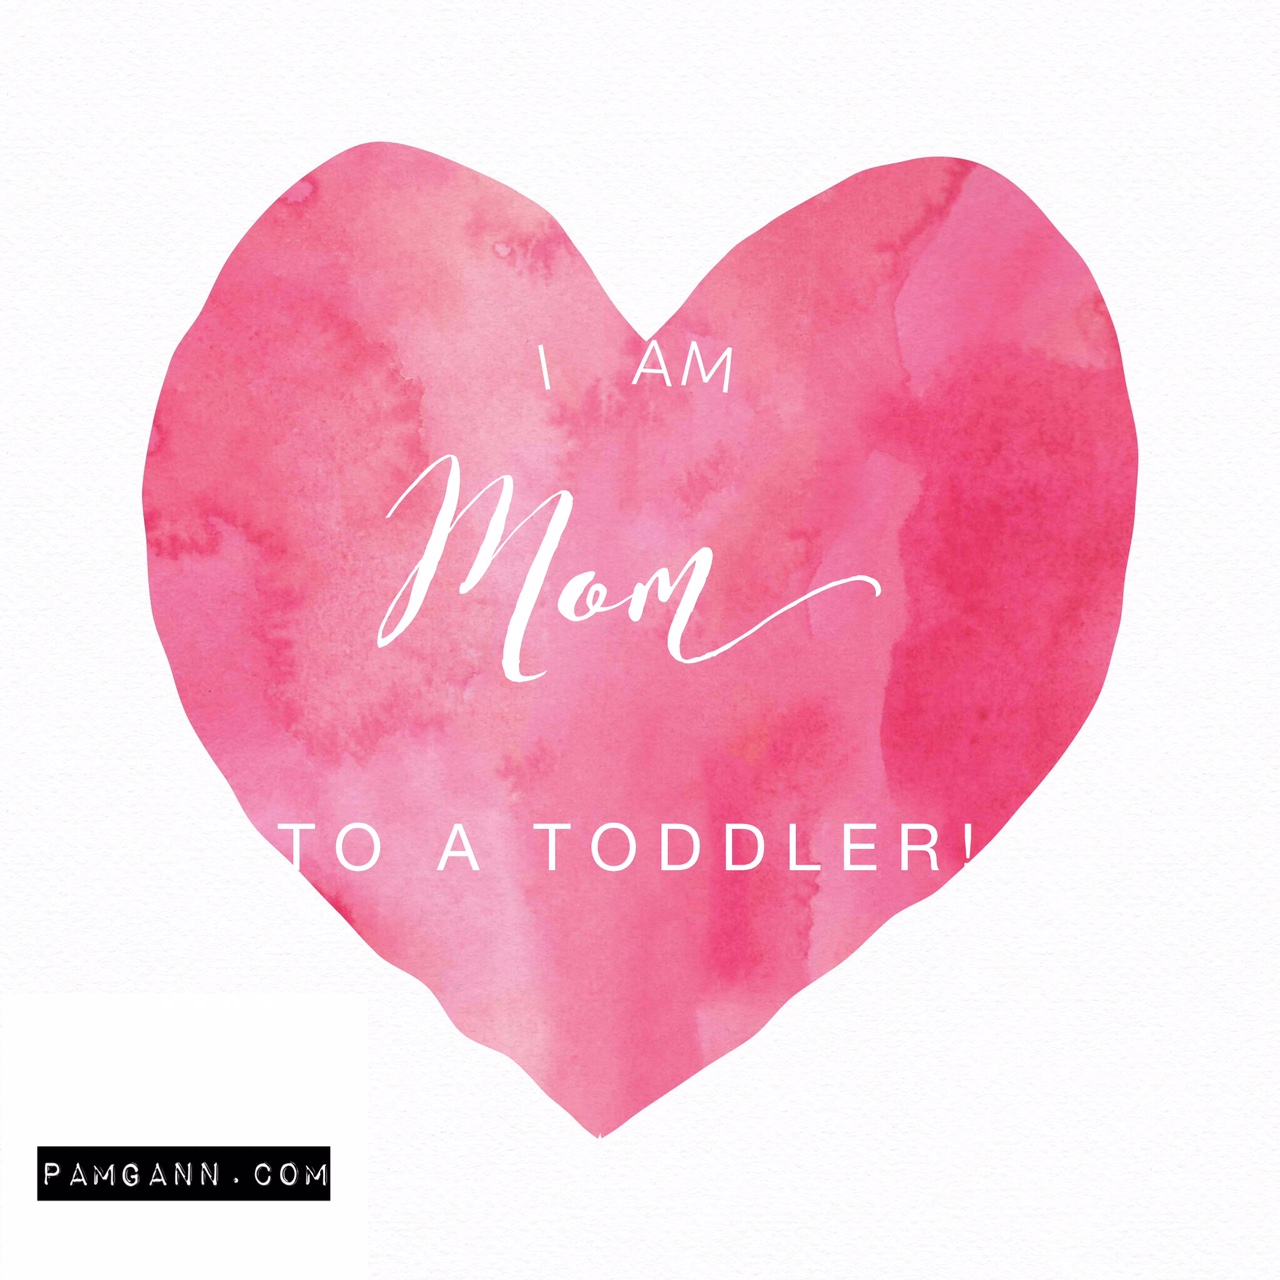 I am mom to a toddler!